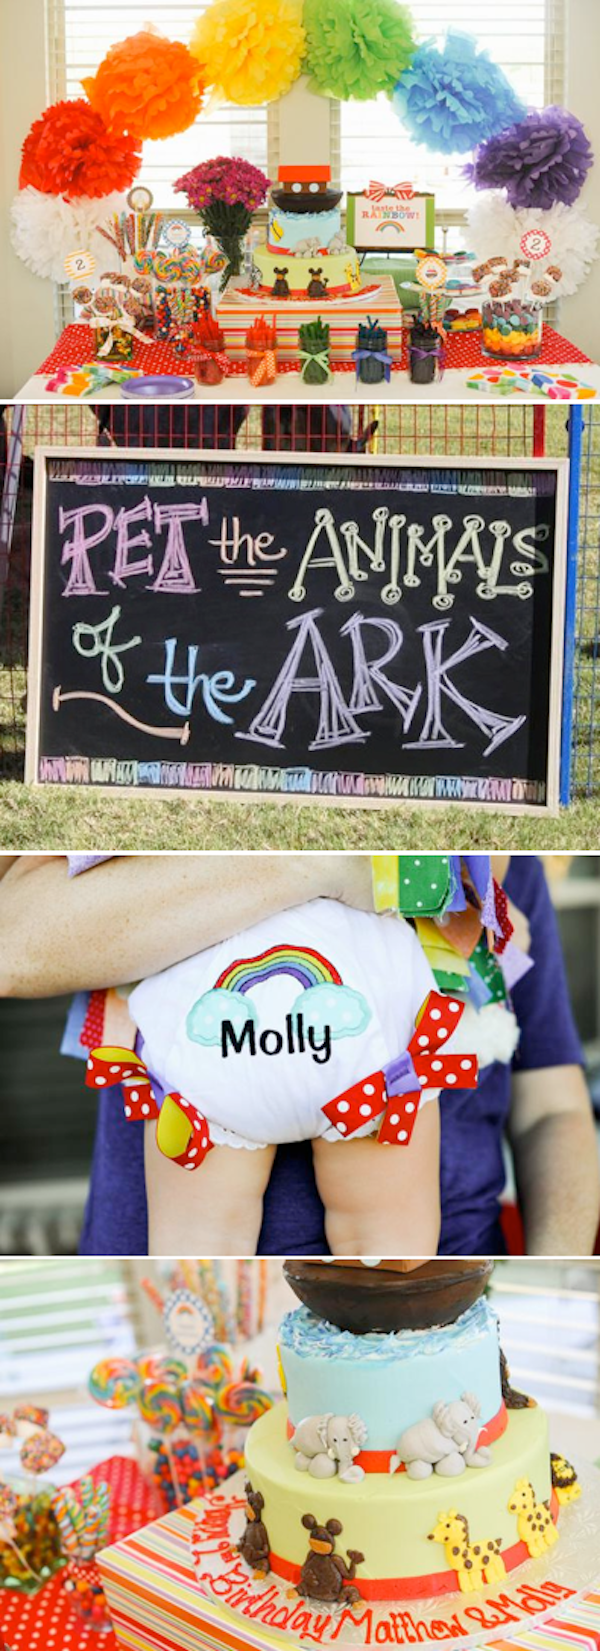 Noah's ark themed birthday party via Kara's Party Ideas KarasPartyIdeas.com #noah's #ark #party #idea #birthday #cake #activities